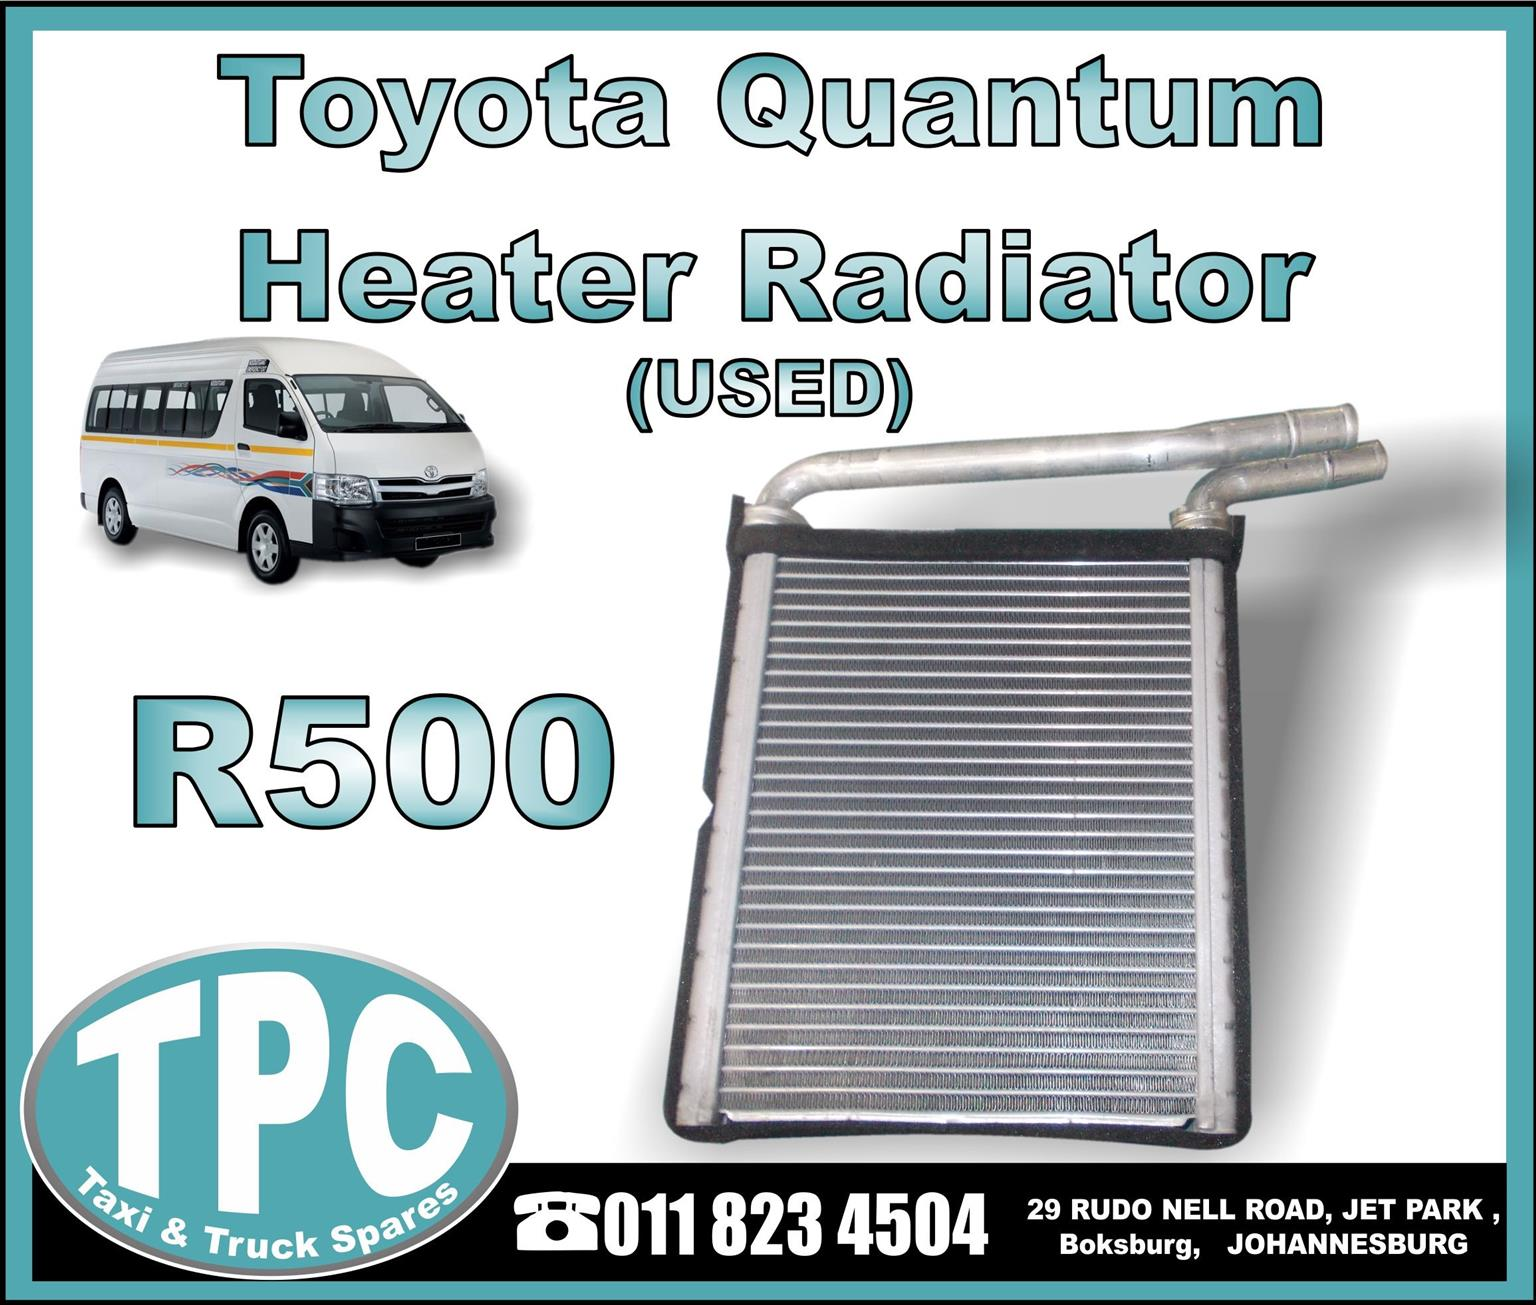 Toyota Quantum Heater Radiator - USED -New And Used Replacement Taxi Parts - TPC